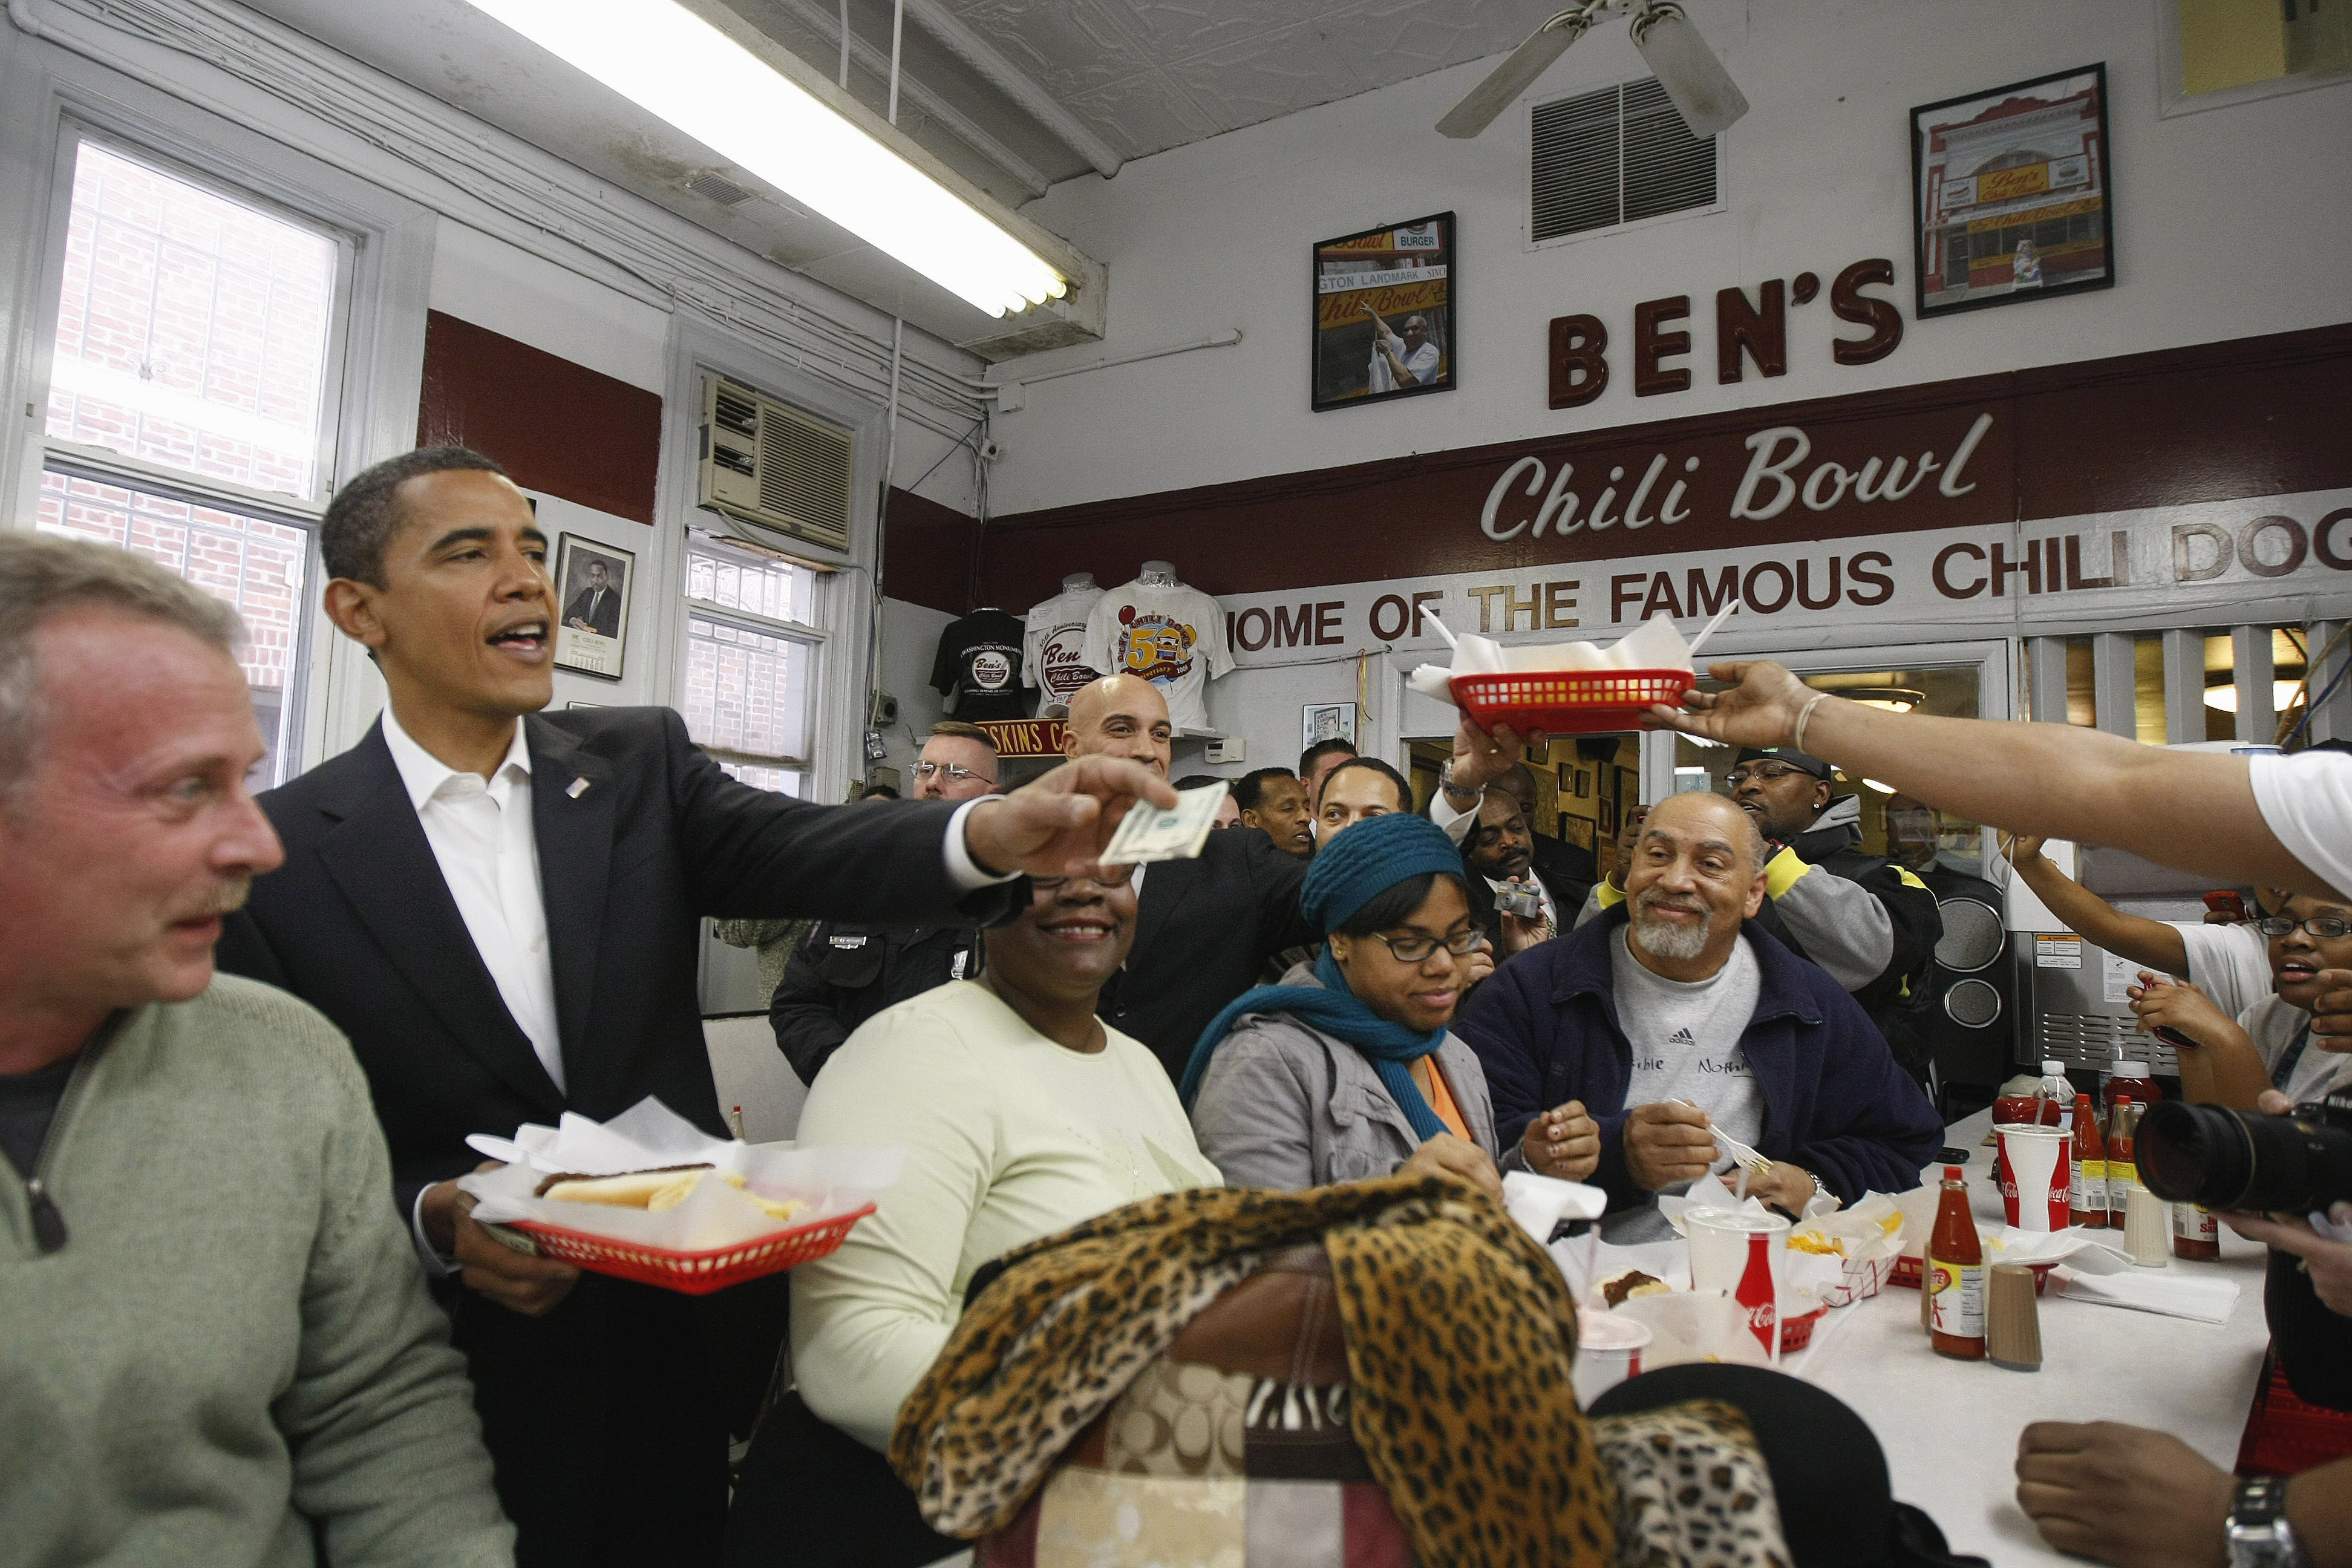 In this Jan. 10, 2009 file photo, then-President-elect Barack Obama stops to eat in Ben's Chili Bowl in Washington.